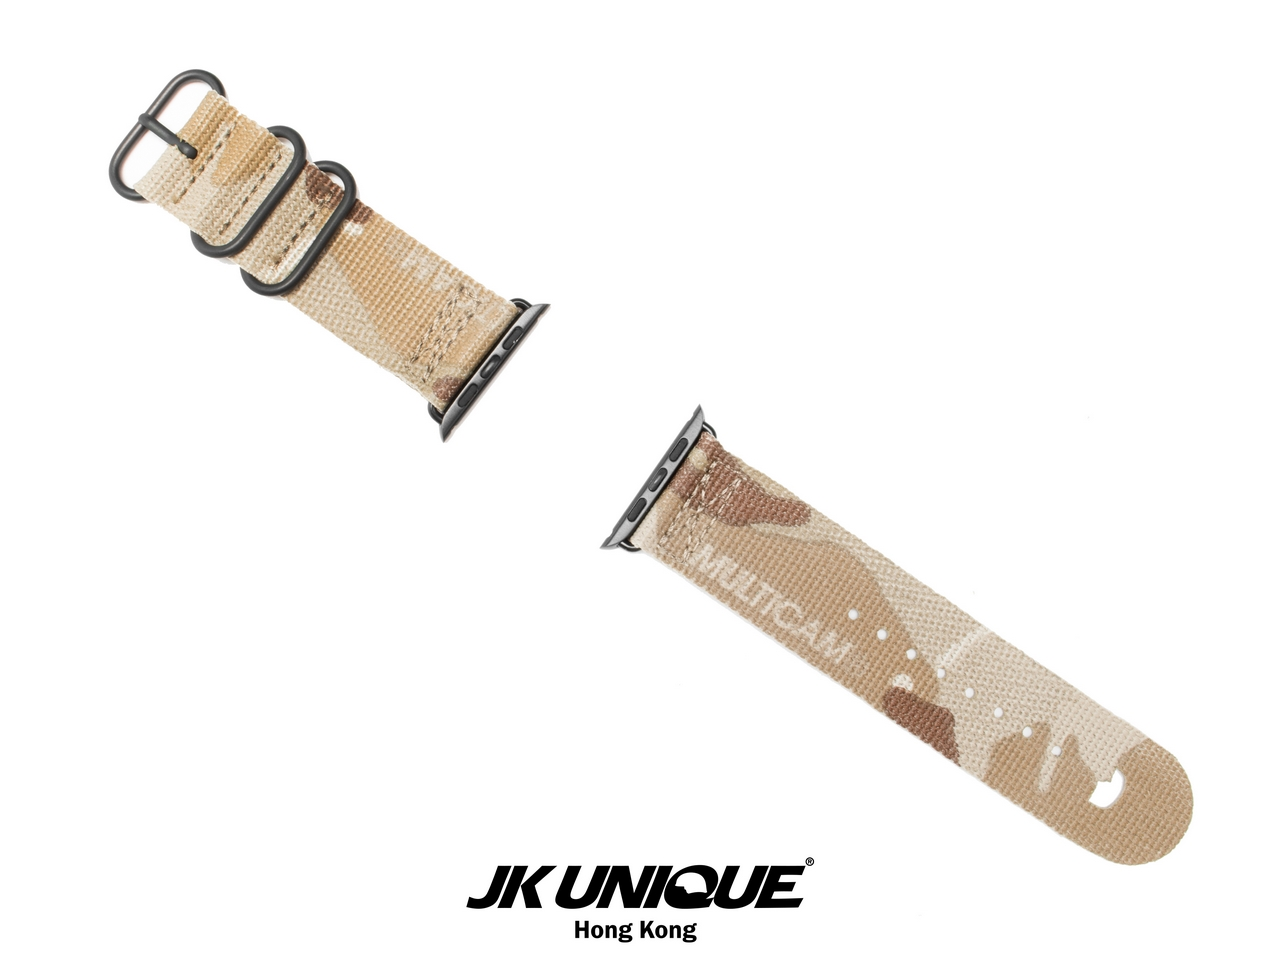 JK-UNIQUE-CAMO-NATO-Apple-Watch-Strap-42mm-BK-Multicam-Arid-1 (1280).jpg